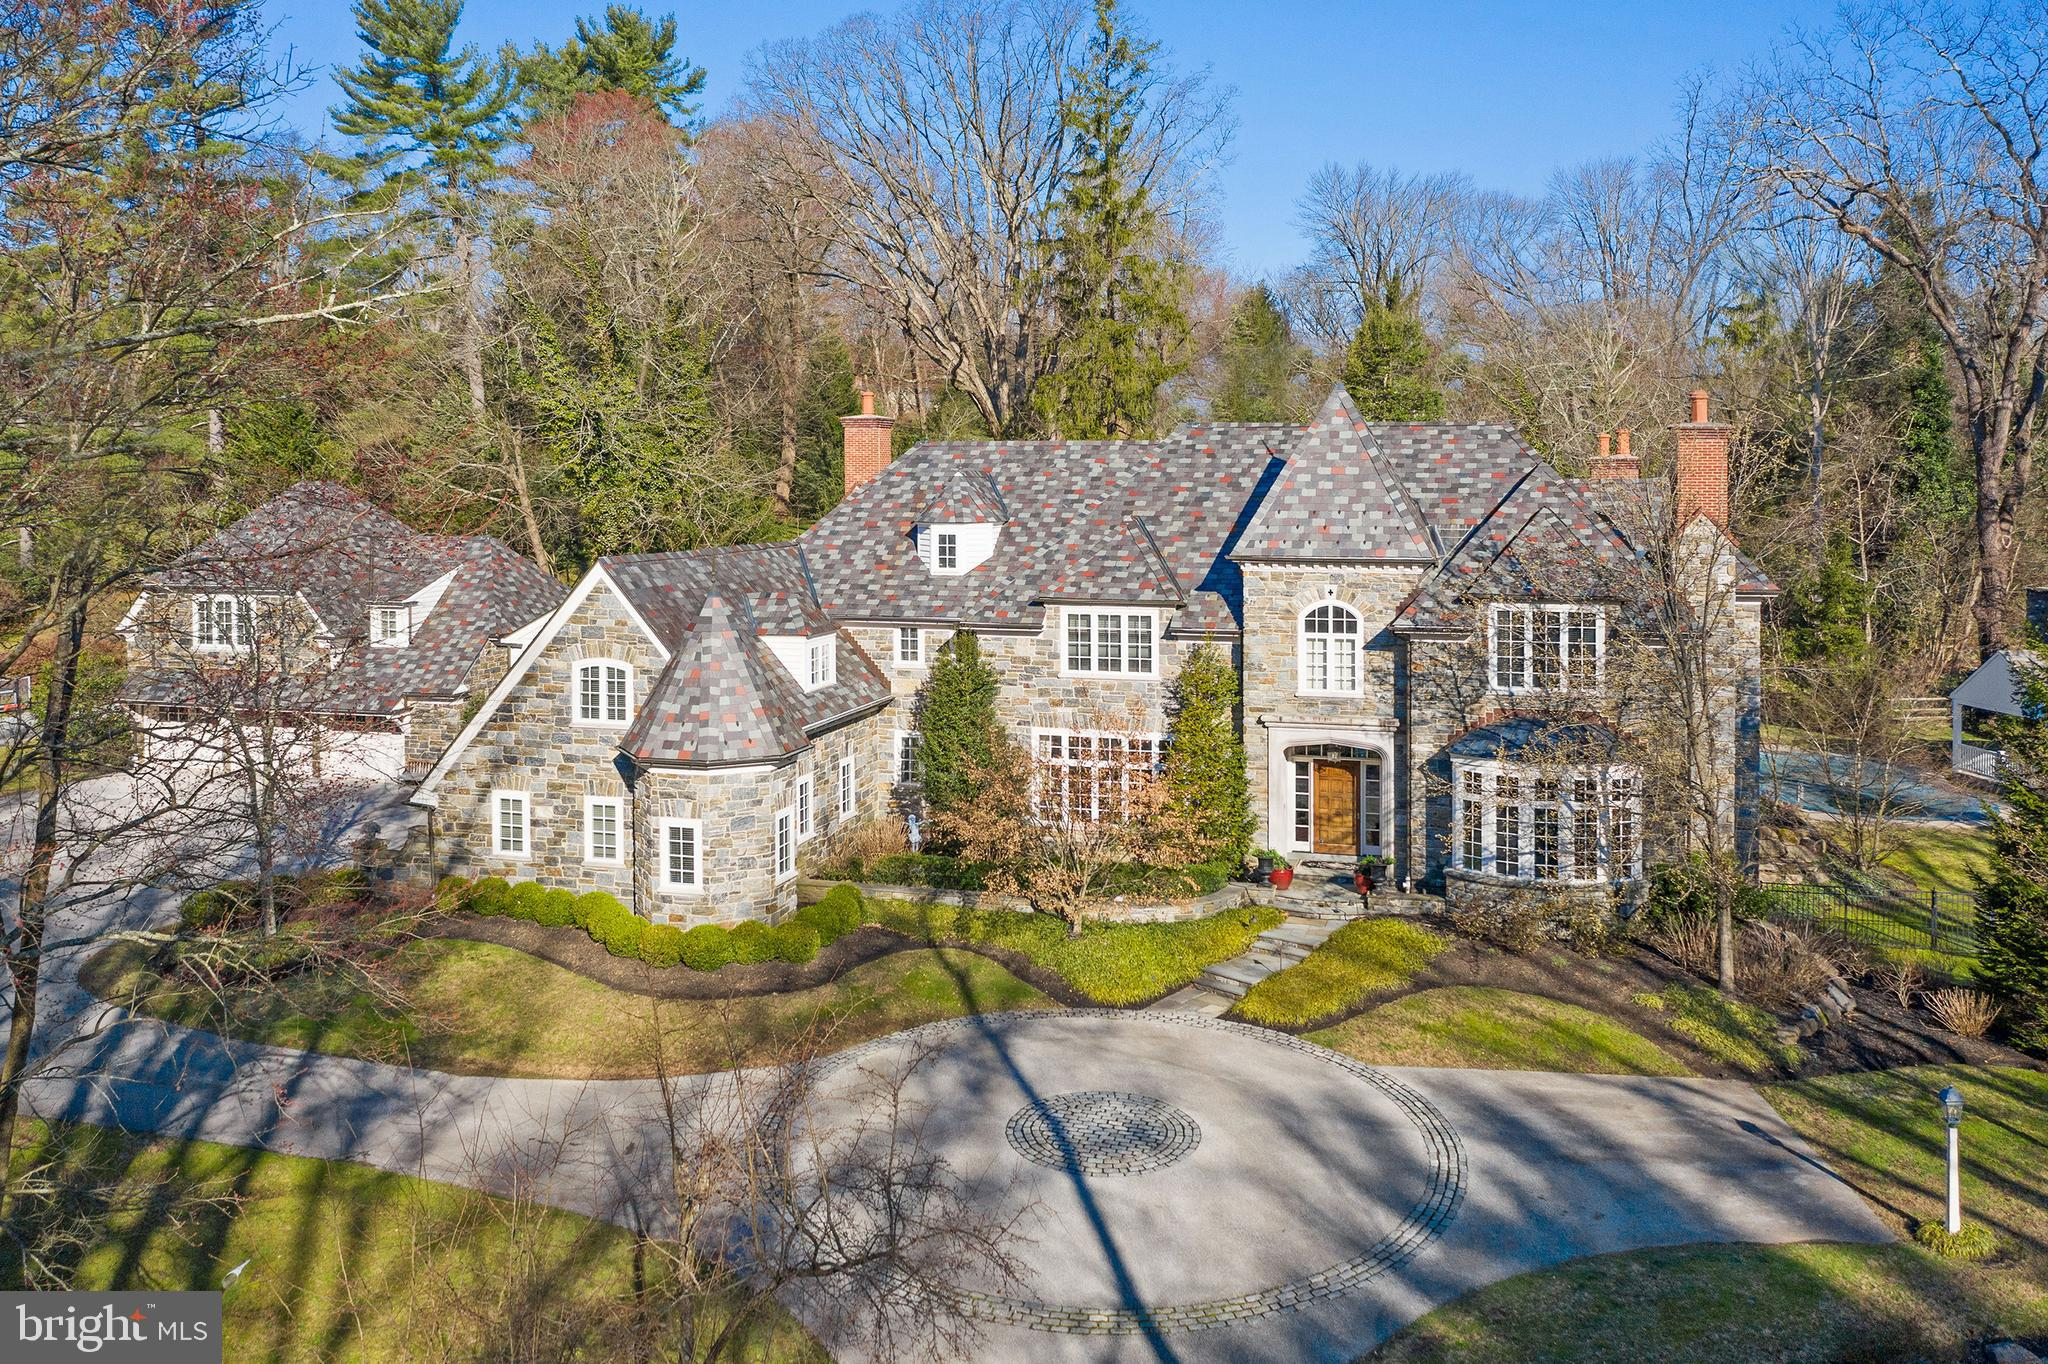 """Incredible opportunity to move right into this exquisitely crafted masterpiece, recently constructed by renowned Pohlig Builders and set on a breathtaking 2.3 acre lot with pool, Carriage House and Pool House in one of Villanova's most prestigious, highly coveted, """"walk to everything"""" locations. Extreme attention to architectural detail while carefully blending old world materials with every modern amenity and refinement is evident throughout this all stone residence, with stunning slate roof and matching secondary structures. Features include 10"""" ceilings throughout the first floor and 9"""" ceilings throughout the second floor, massive sun-filled windows with a wonderful open floor plan, beautiful moldings, casements and millwork, wide- plank hand carved oak floors, gracious room sizes throughout, a fabulous custom Gourmet Kitchen with top of the line professional appliances,  First Floor private In-Law Suite with full Kitchen and Bathroom, Luxurious Master Suite with His and Hers marble Baths, 4 additional spacious second floor Bedrooms with custom En-Suite Baths, an expansive beautifully finished Lower Level and incredible separate Carriage House Guest Apartment with vintage Kitchen and Full Bathroom, Living Room with fireplace and cozy Bedroom.  This rare treasure offers serene privacy while being close to renowned schools, shopping, restaurants, trains, all major commuting routes and just minutes from Philadelphia International Airport and Center City Philadelphia.  LOW TAXES:  Walk to The Radnor Trail! LOW TAXES!!"""